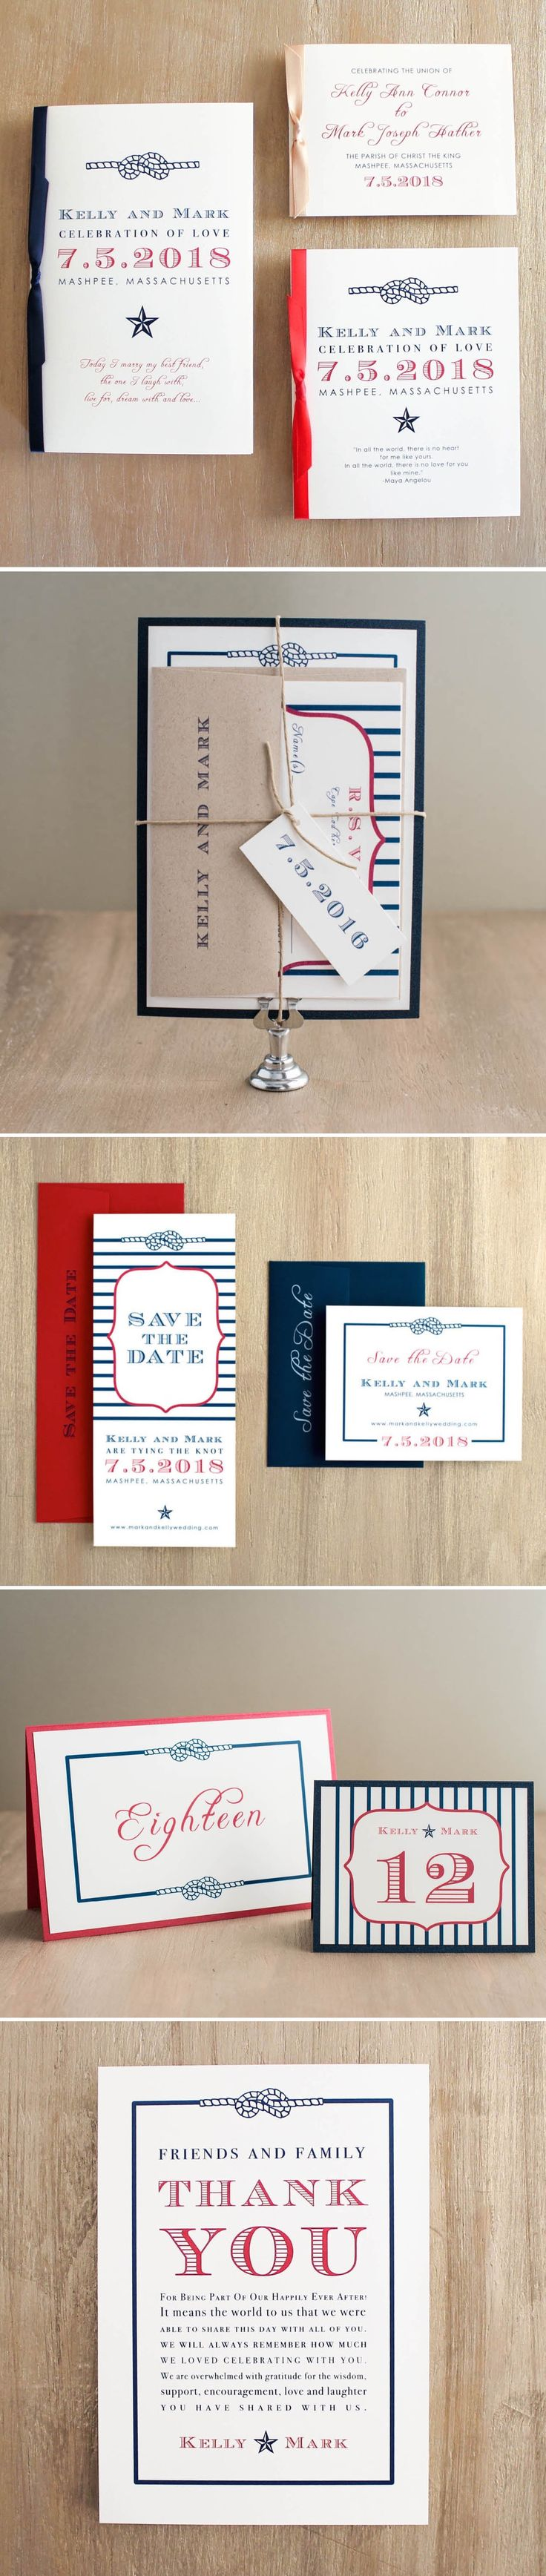 thank you card wording wedding no gift%0A Patrioticinspired wedding invitation  save the dates  ceremony programs   table numbers and thank you cards  of July Wedding